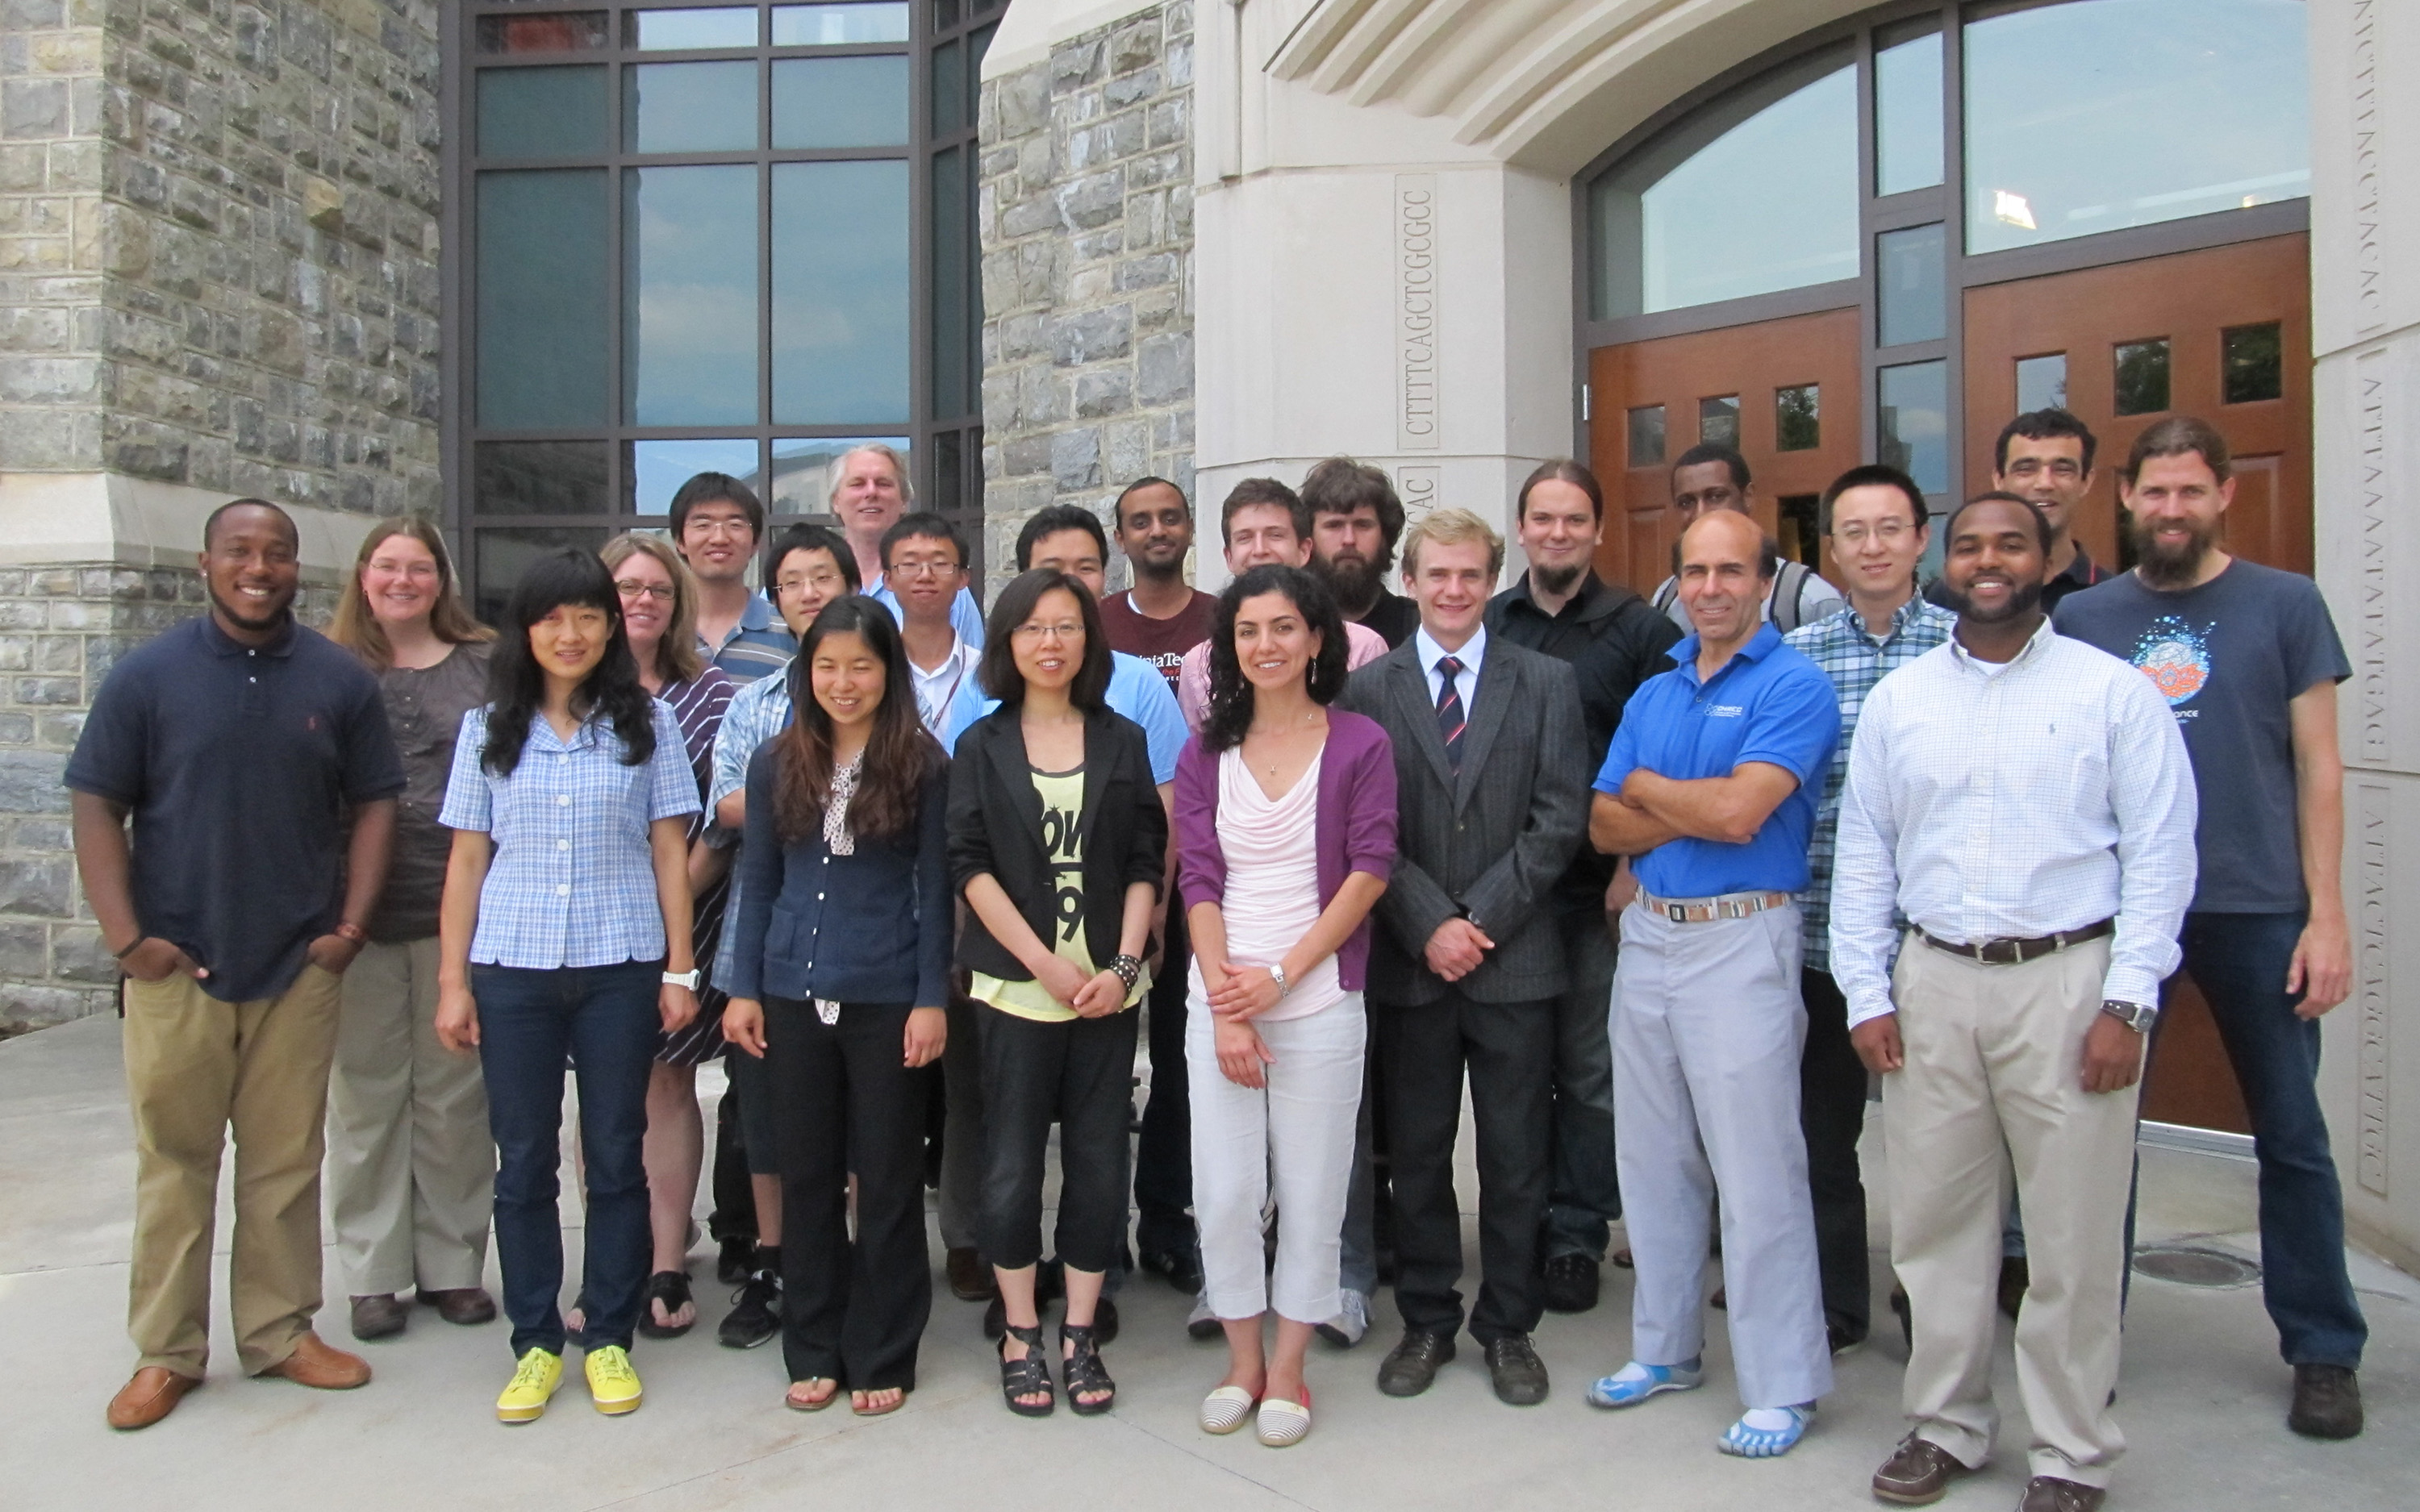 Pictured are students and mentors of the summer institute.